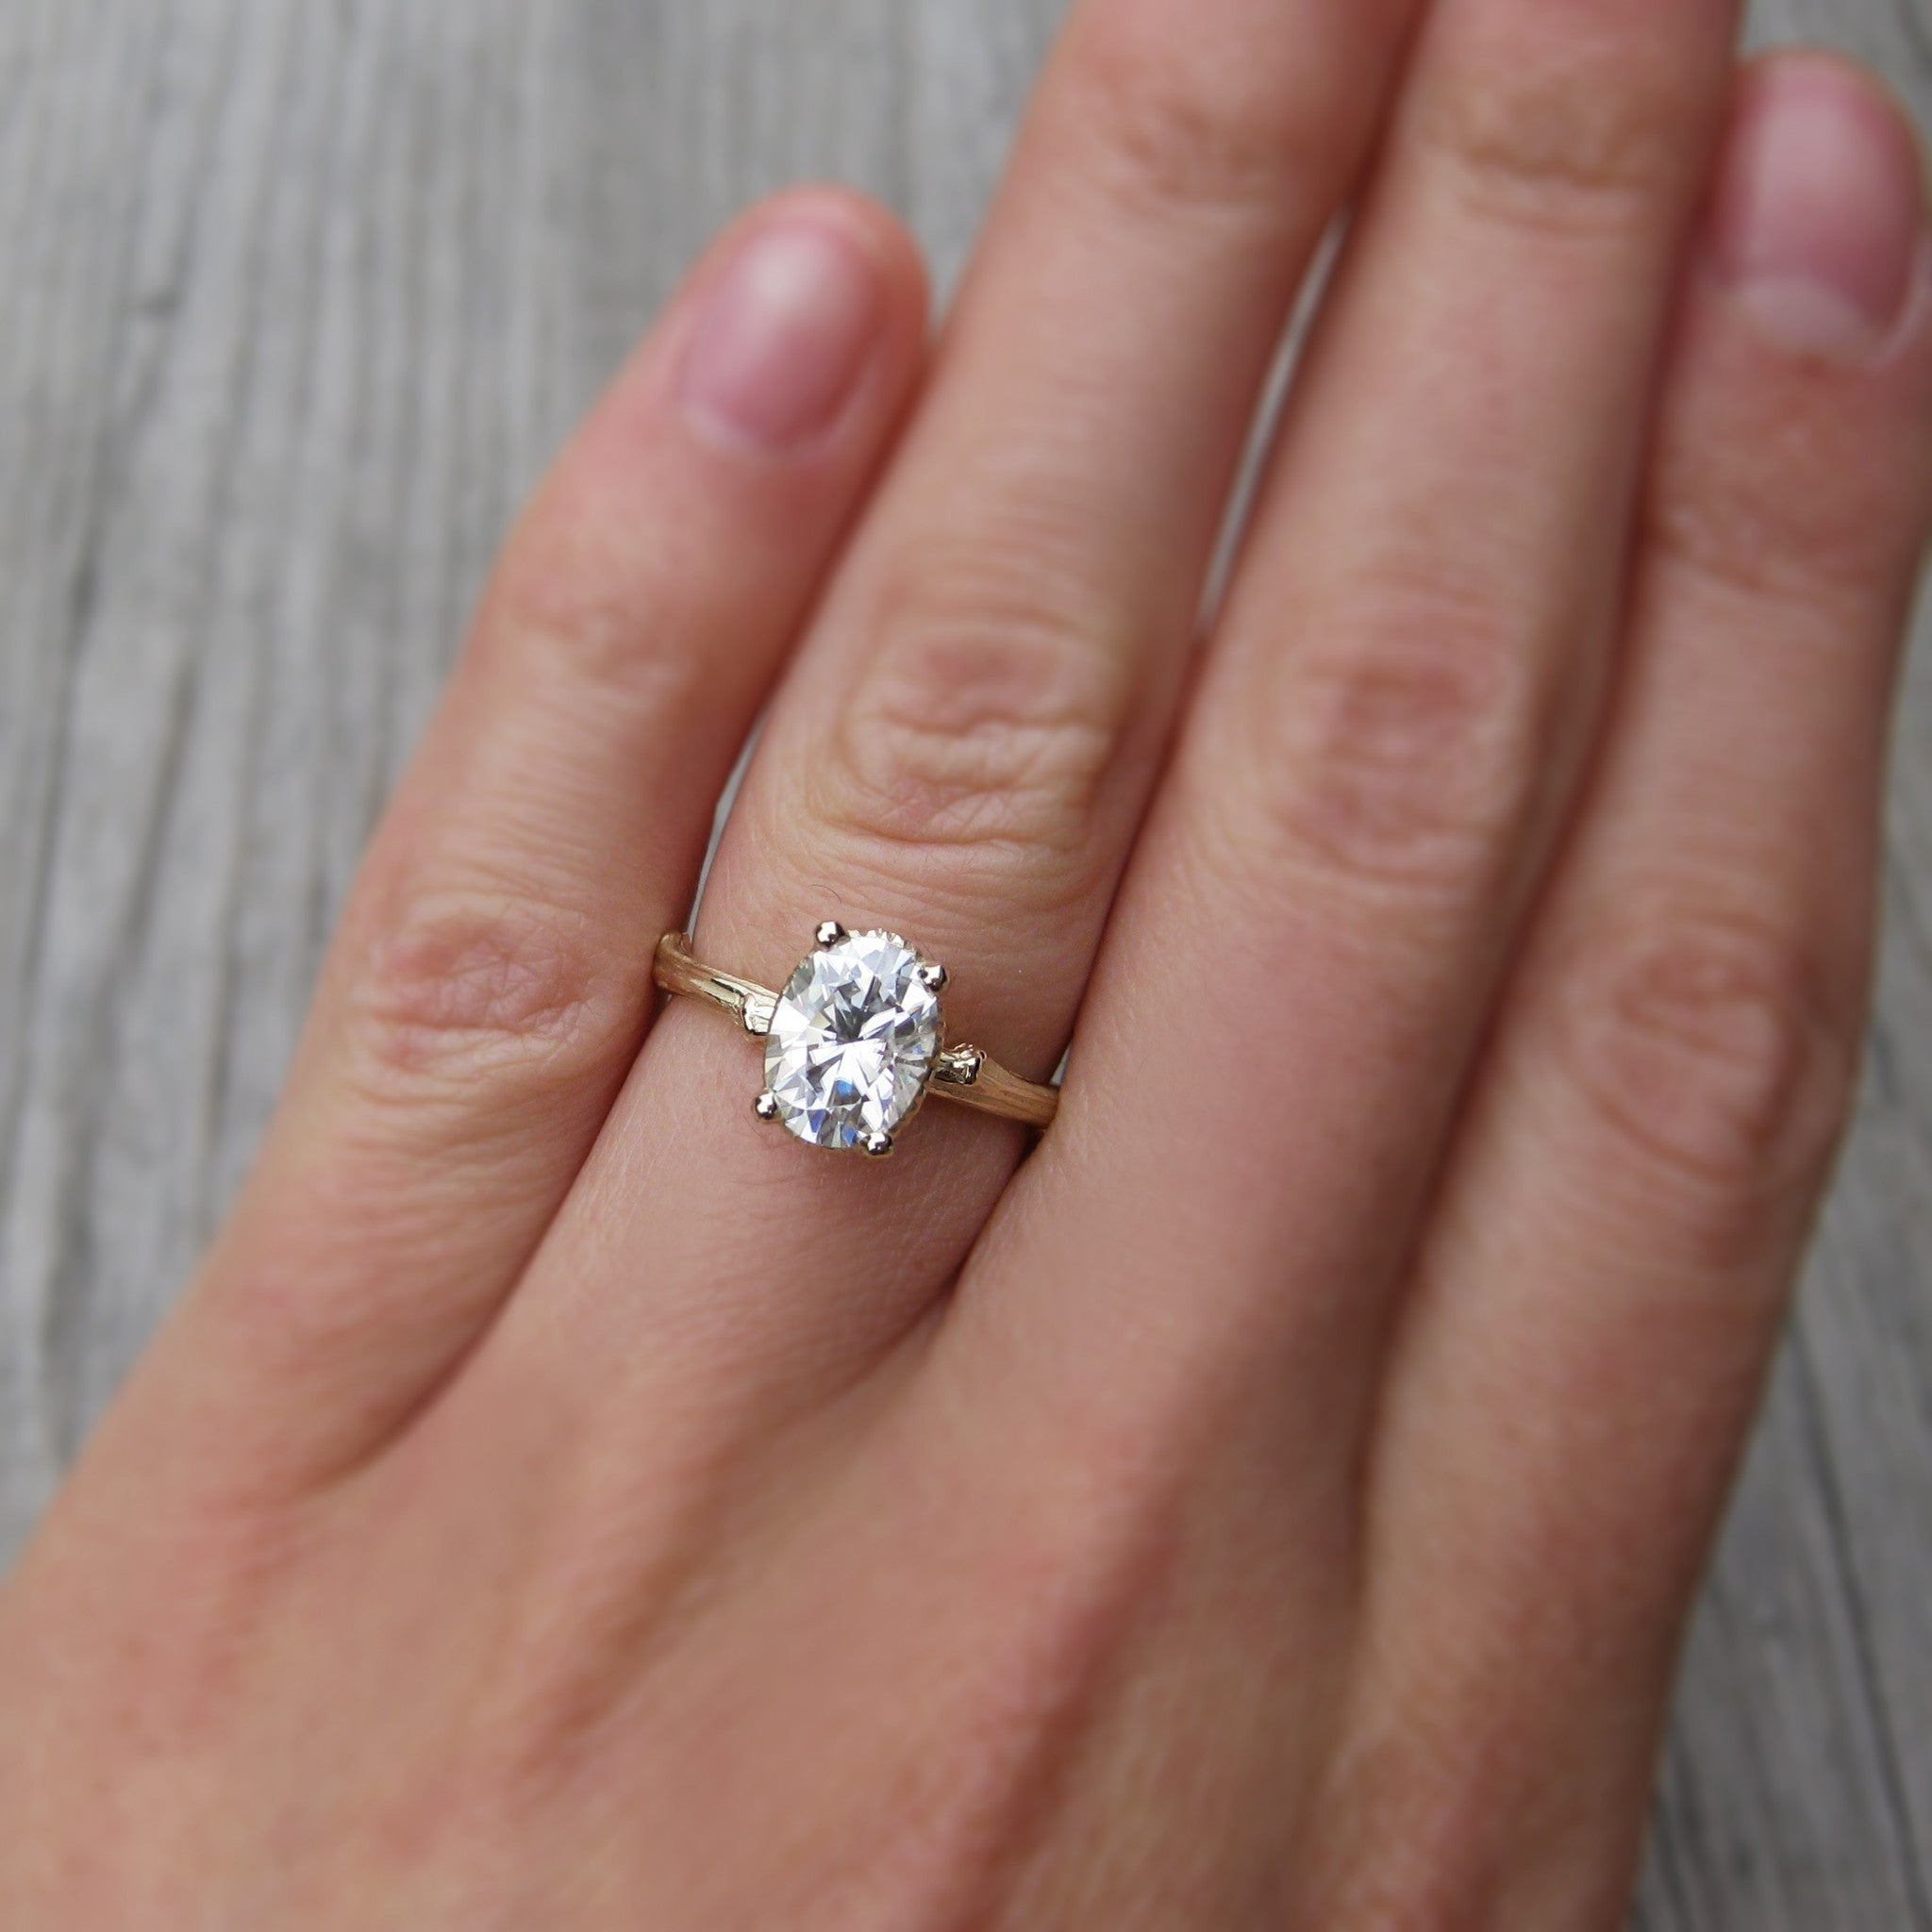 Oval Forever One Or Supernova Moissanite Twig Engagement Ring 1 5carat Kristin Coffin Jewelry